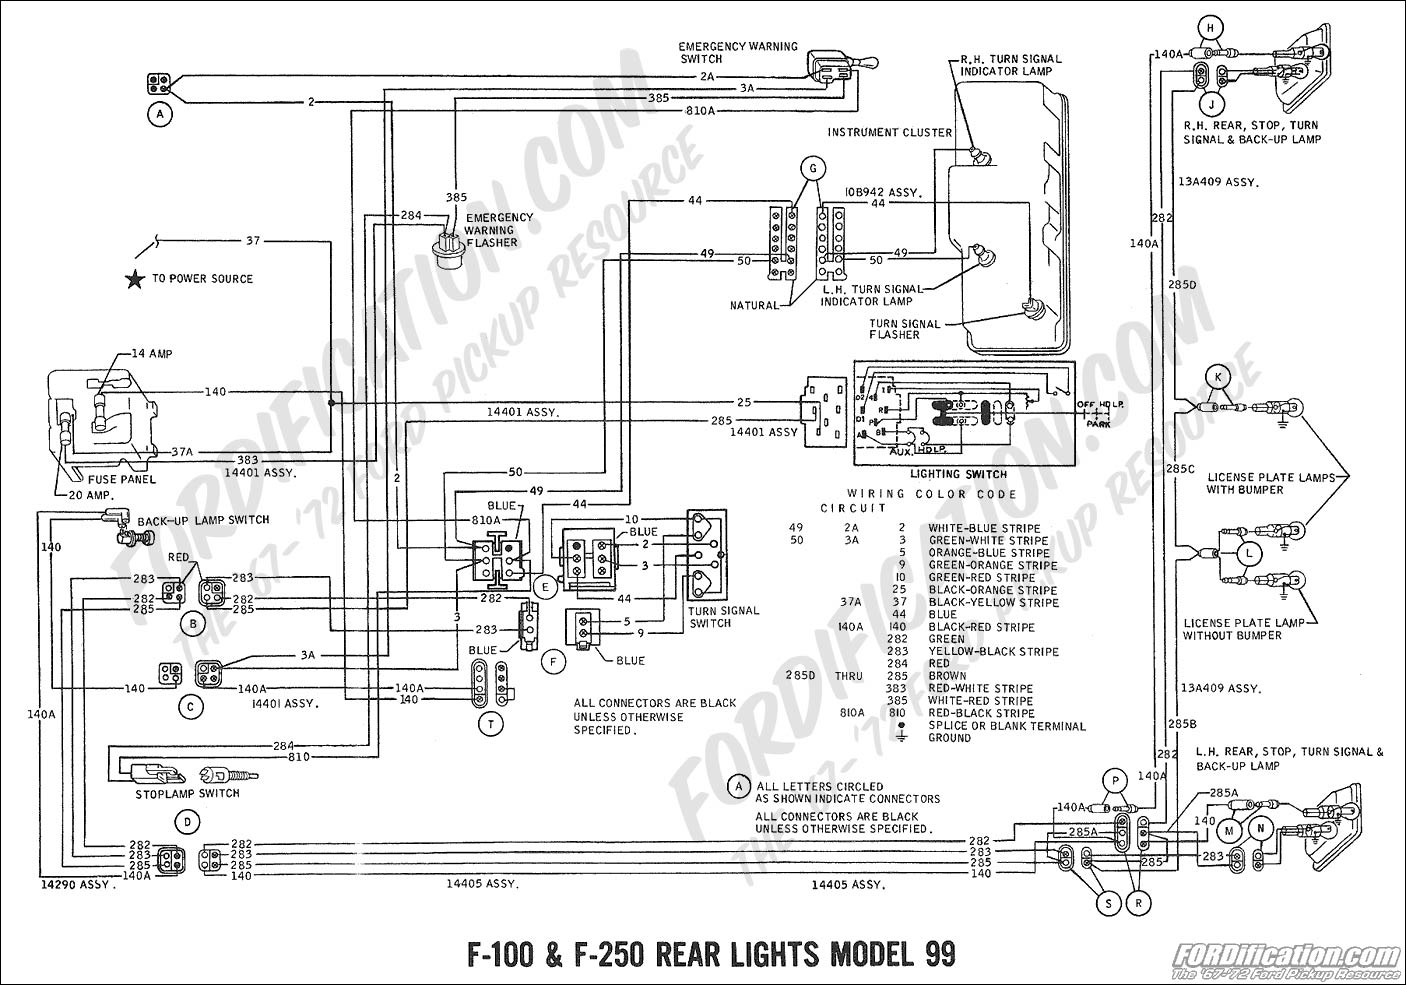 2002 honda wiring diagram clock with Viewtopic on Vespa Et4 Exploded Diagram as well Viewtopic further 0y1v8 Headlights Not Working Honda Crv 2005 Fuses Ok L in addition Ford Obd2 Wiring Diagram also Car Engine Parts   Becuo.